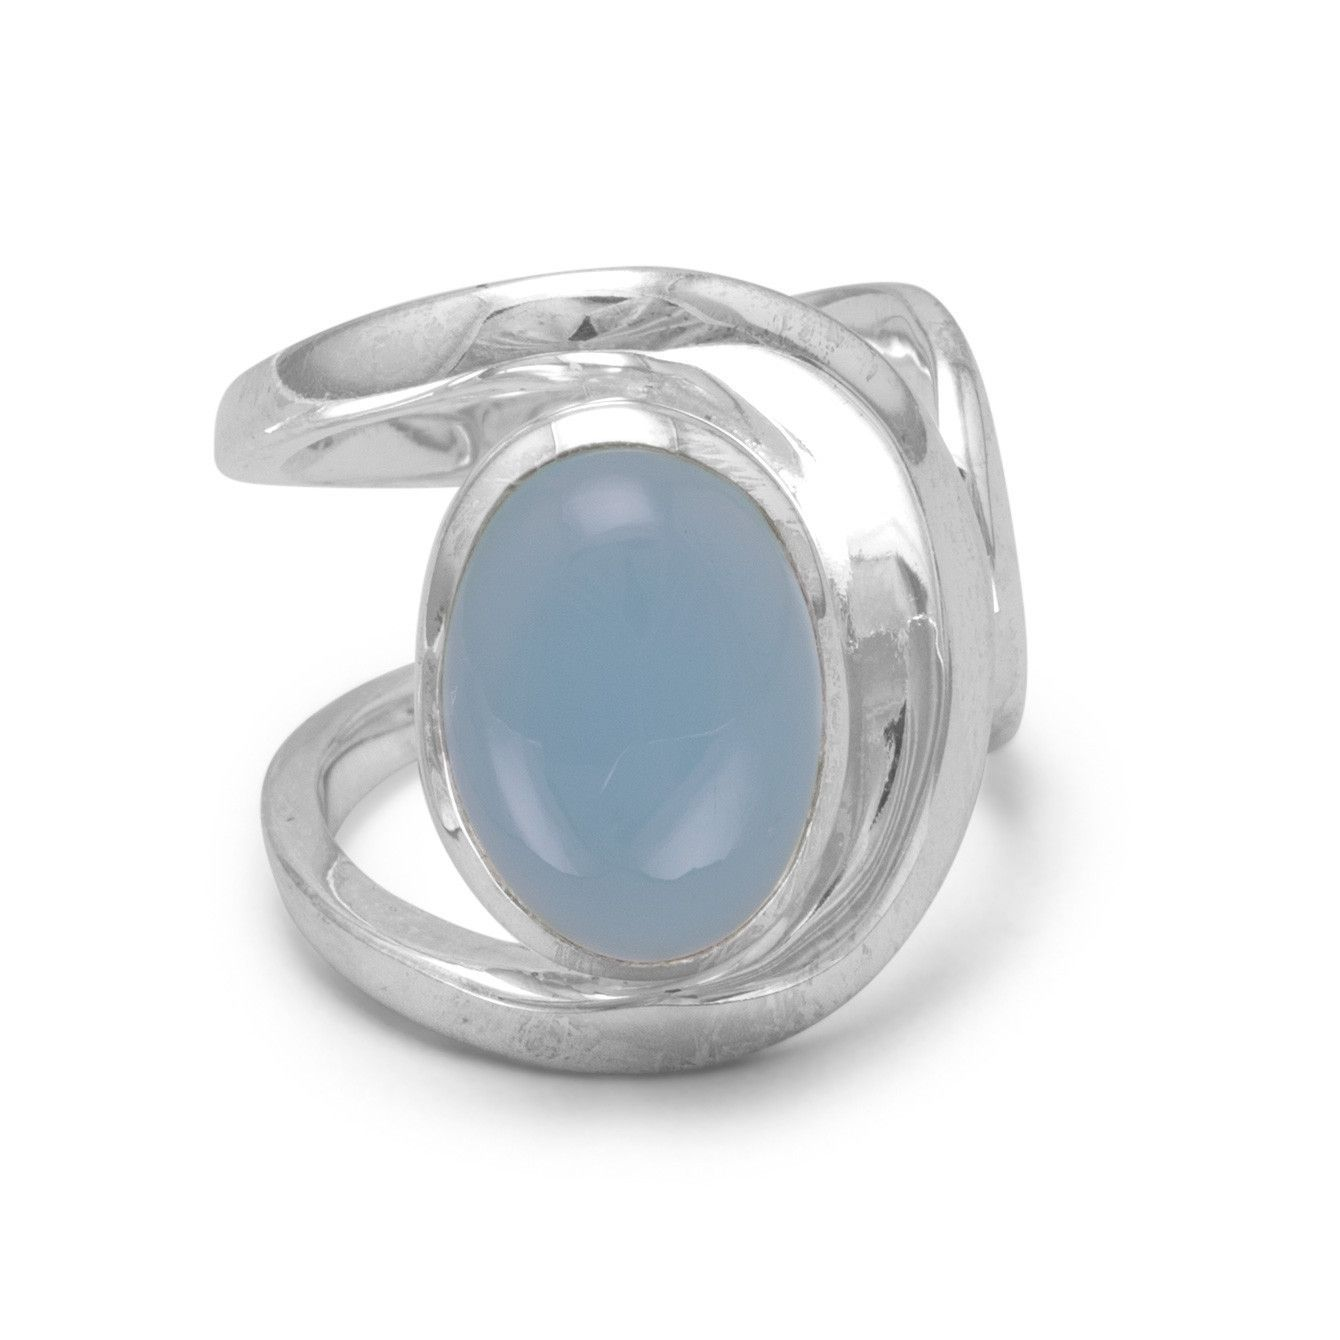 Statement Chalcedony Ring